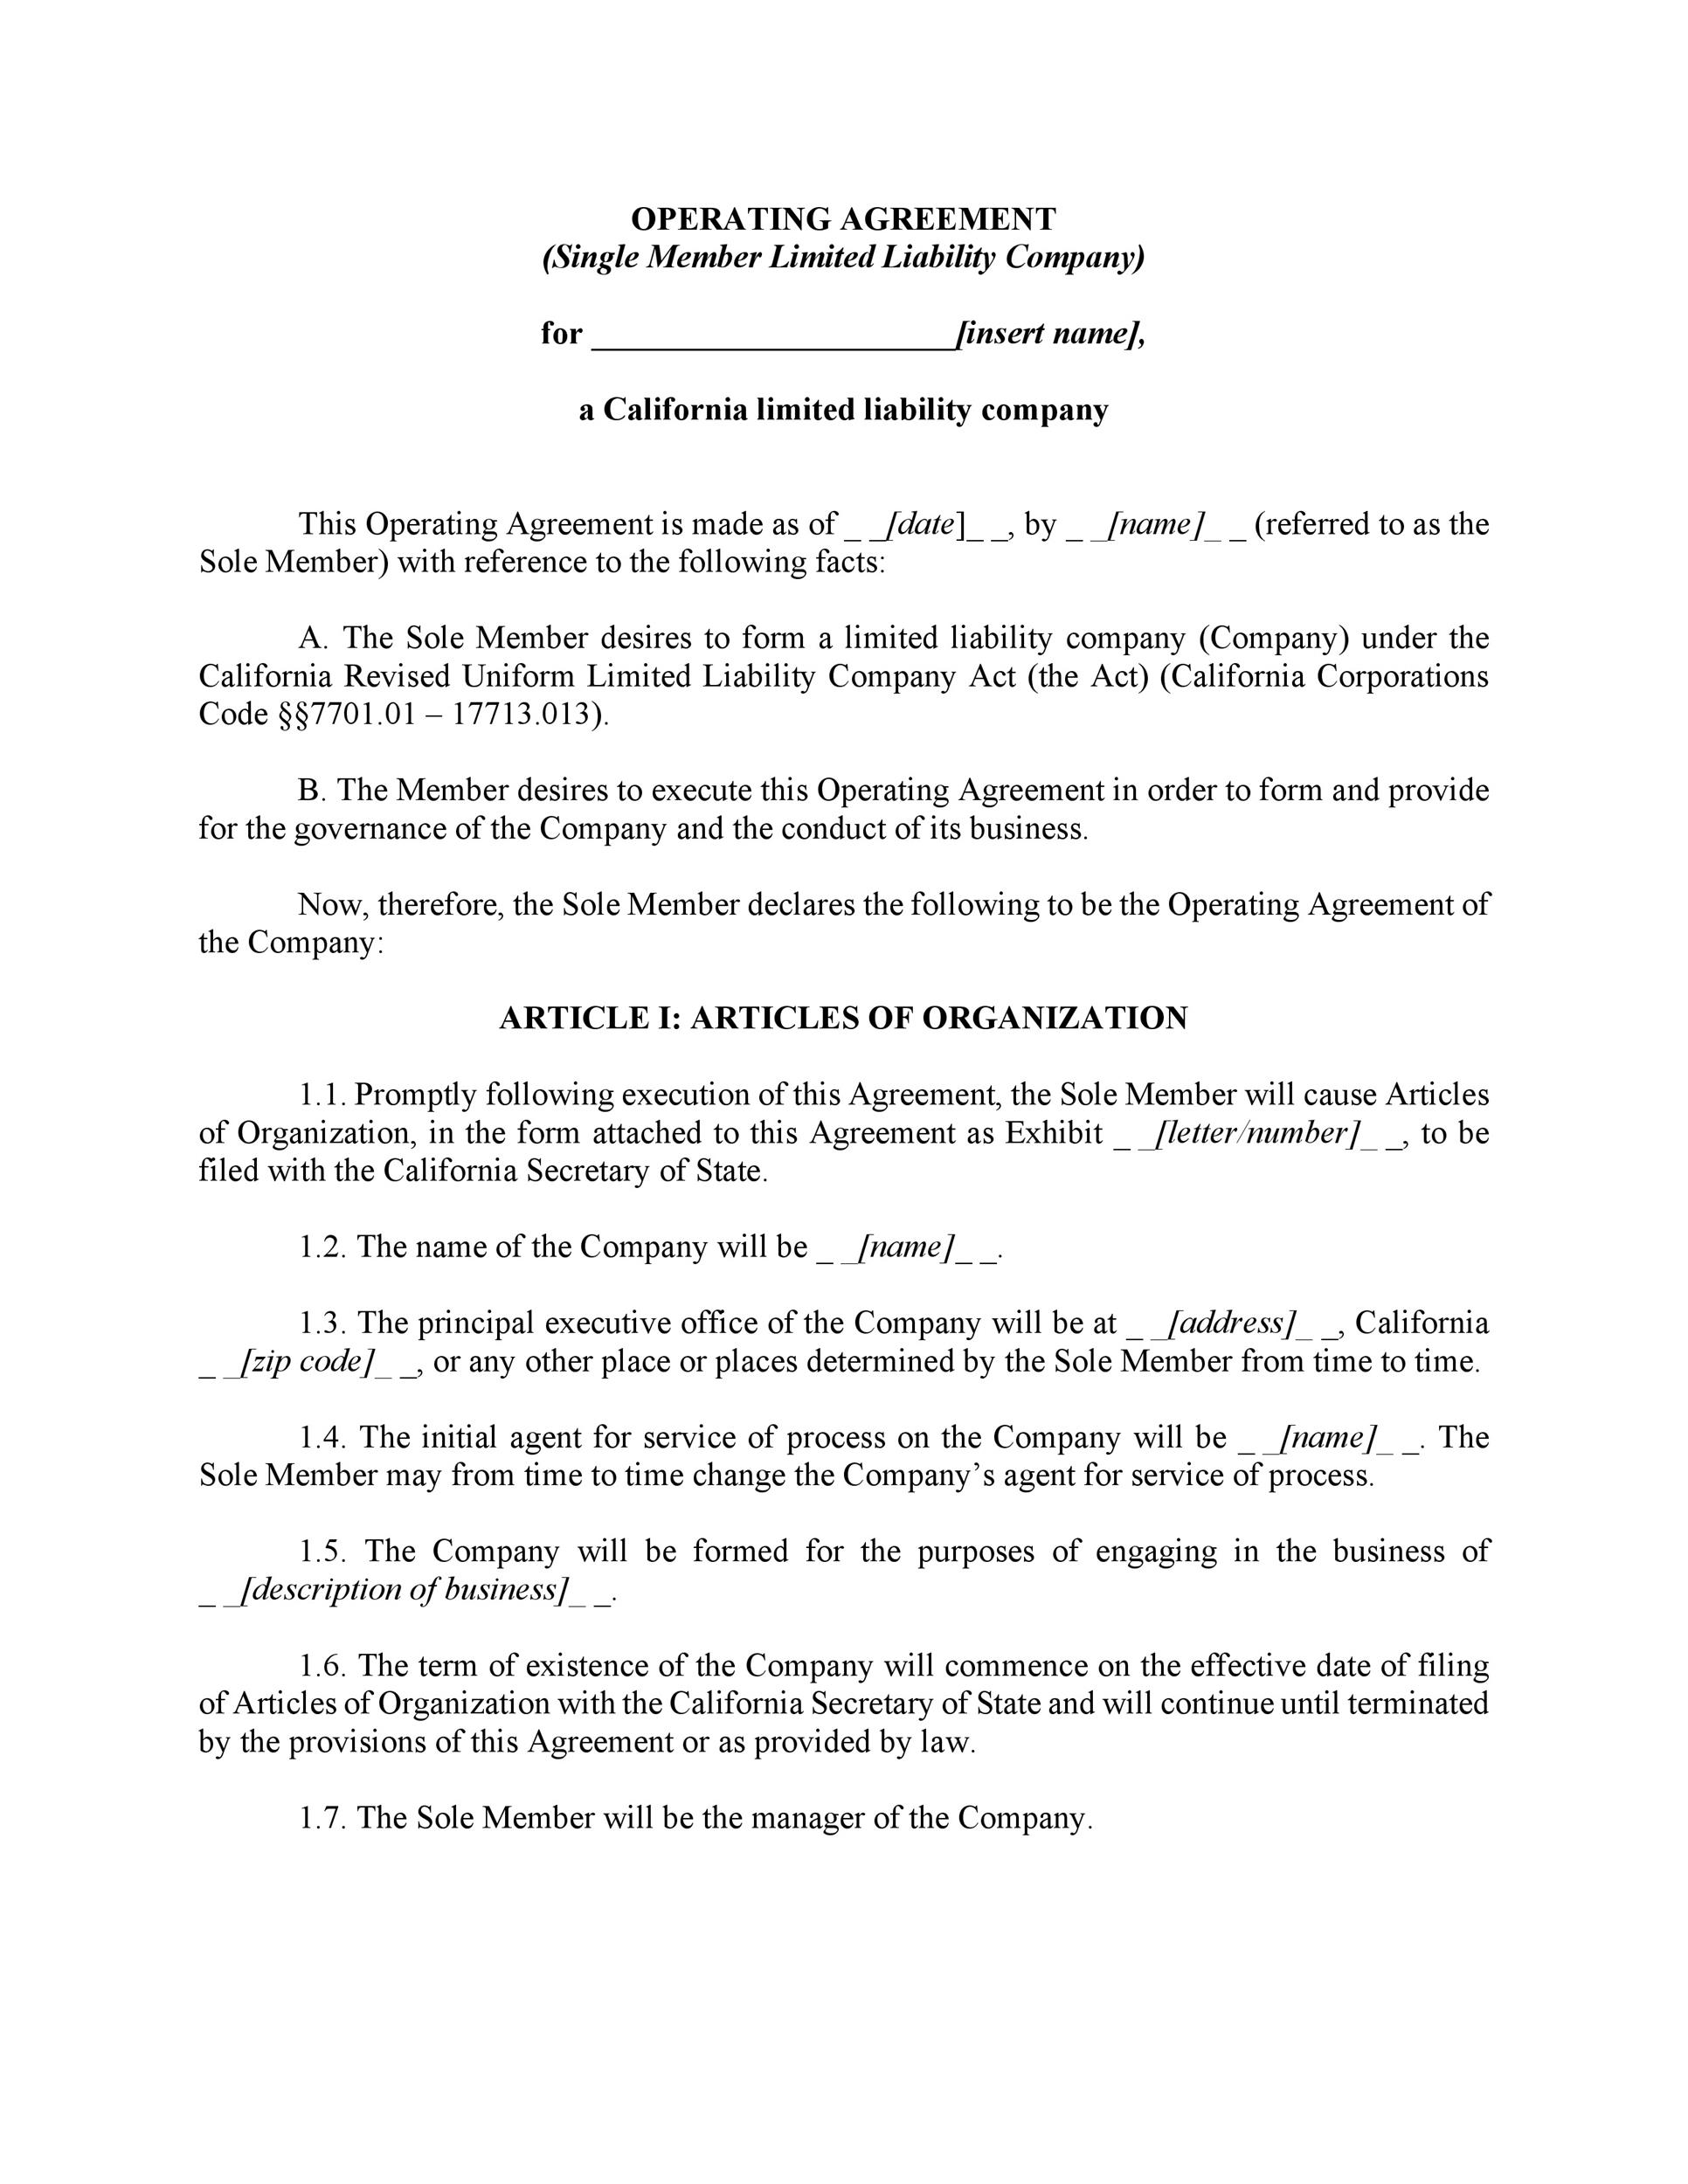 30 Professional LLC Operating Agreement Templates ᐅ Template Lab